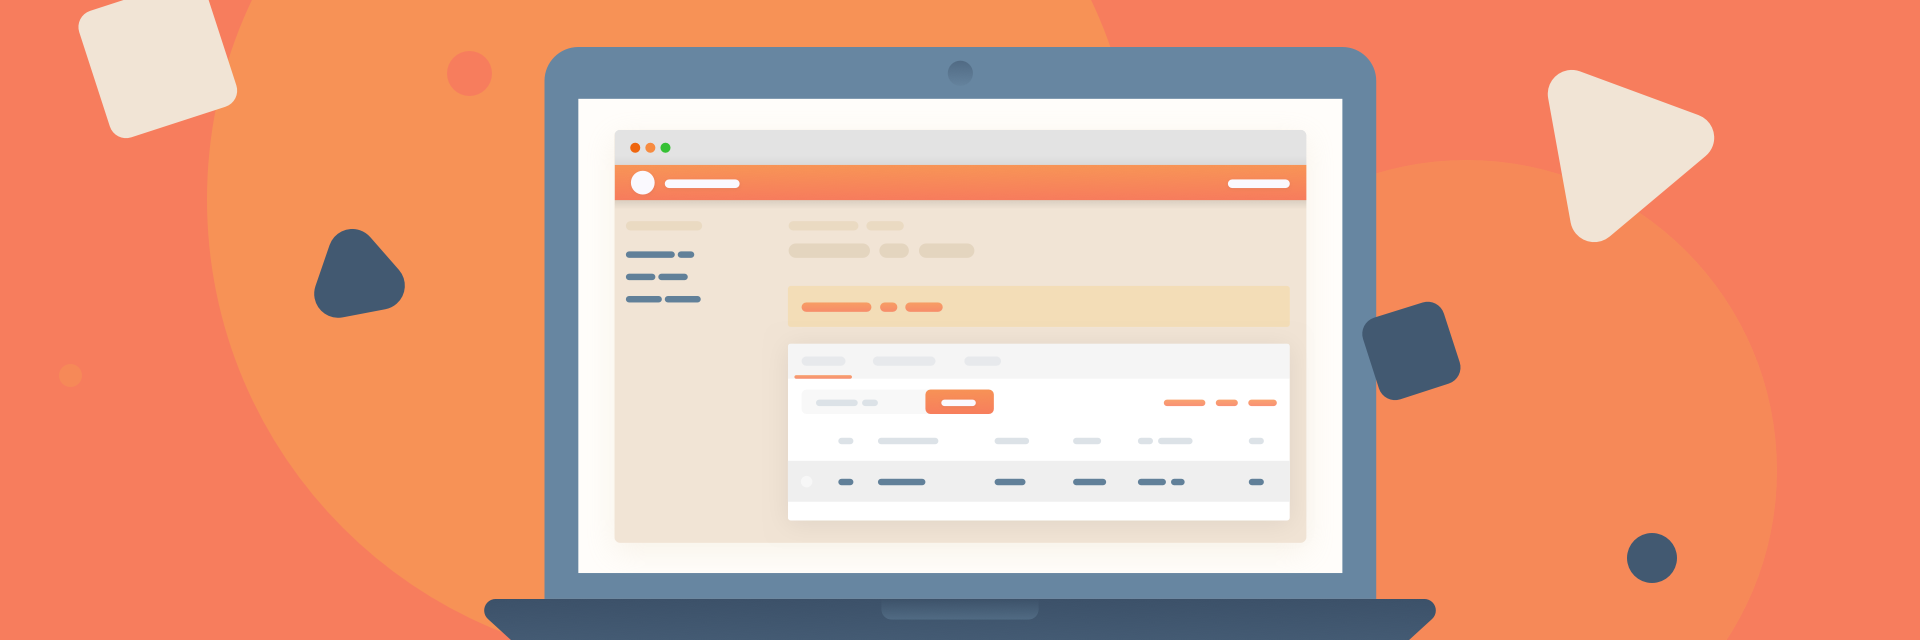 Rails Admin Theme is here!